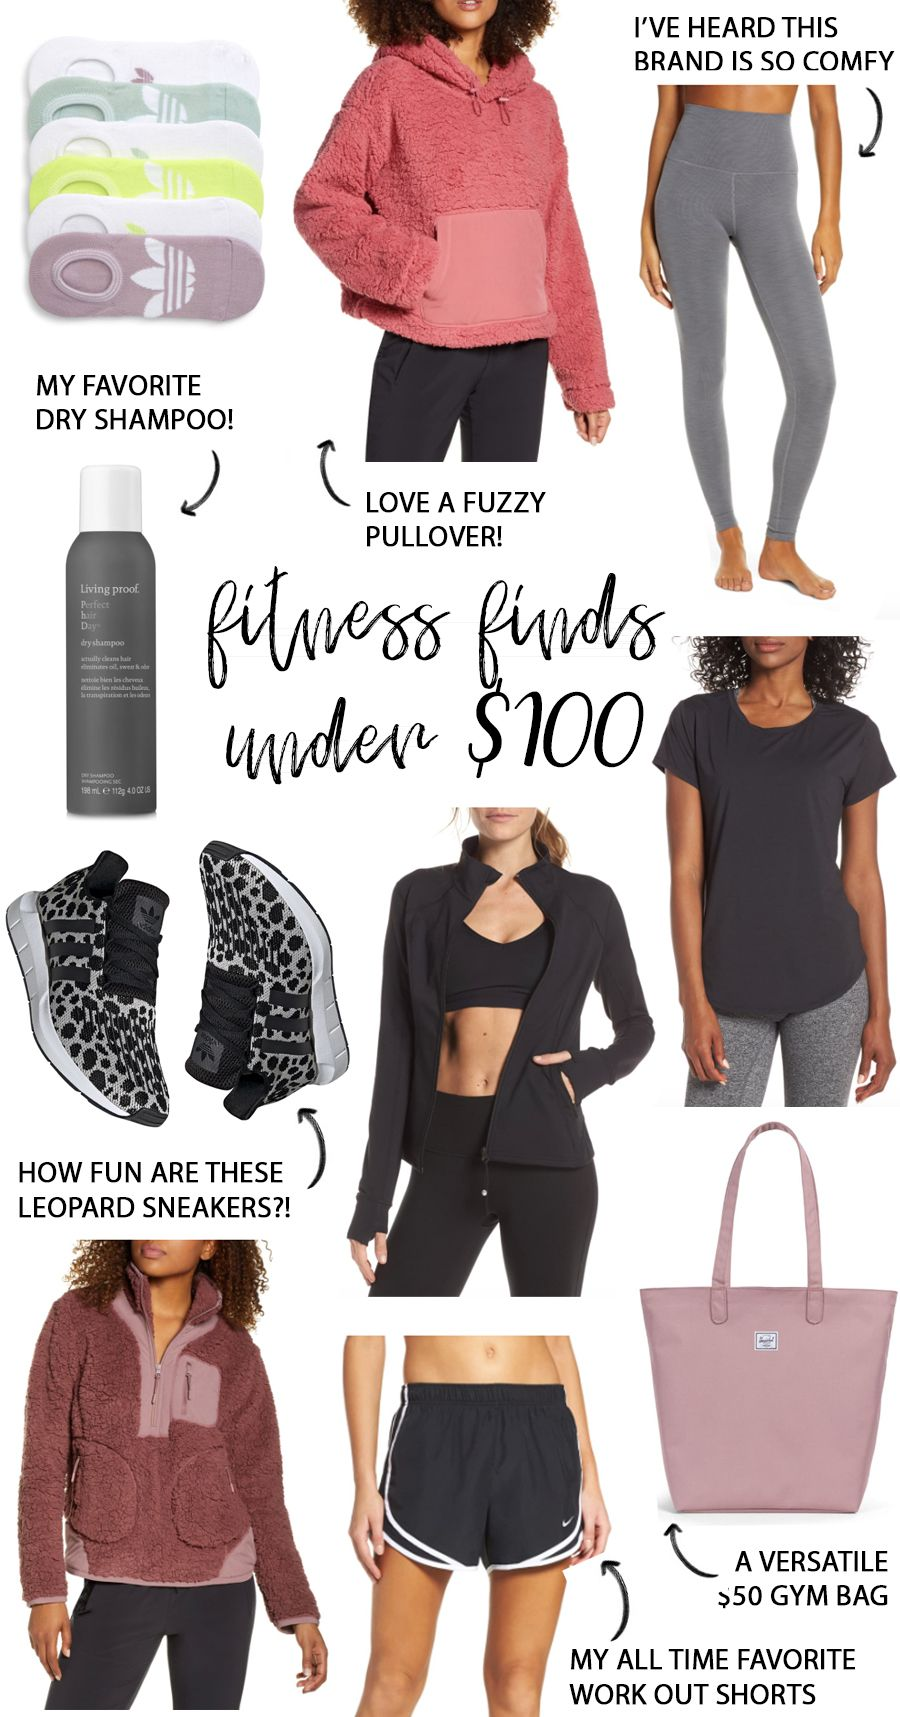 A Mix of Min shares a round up of fitness and athleisure finds that are affordably under $100 like B...